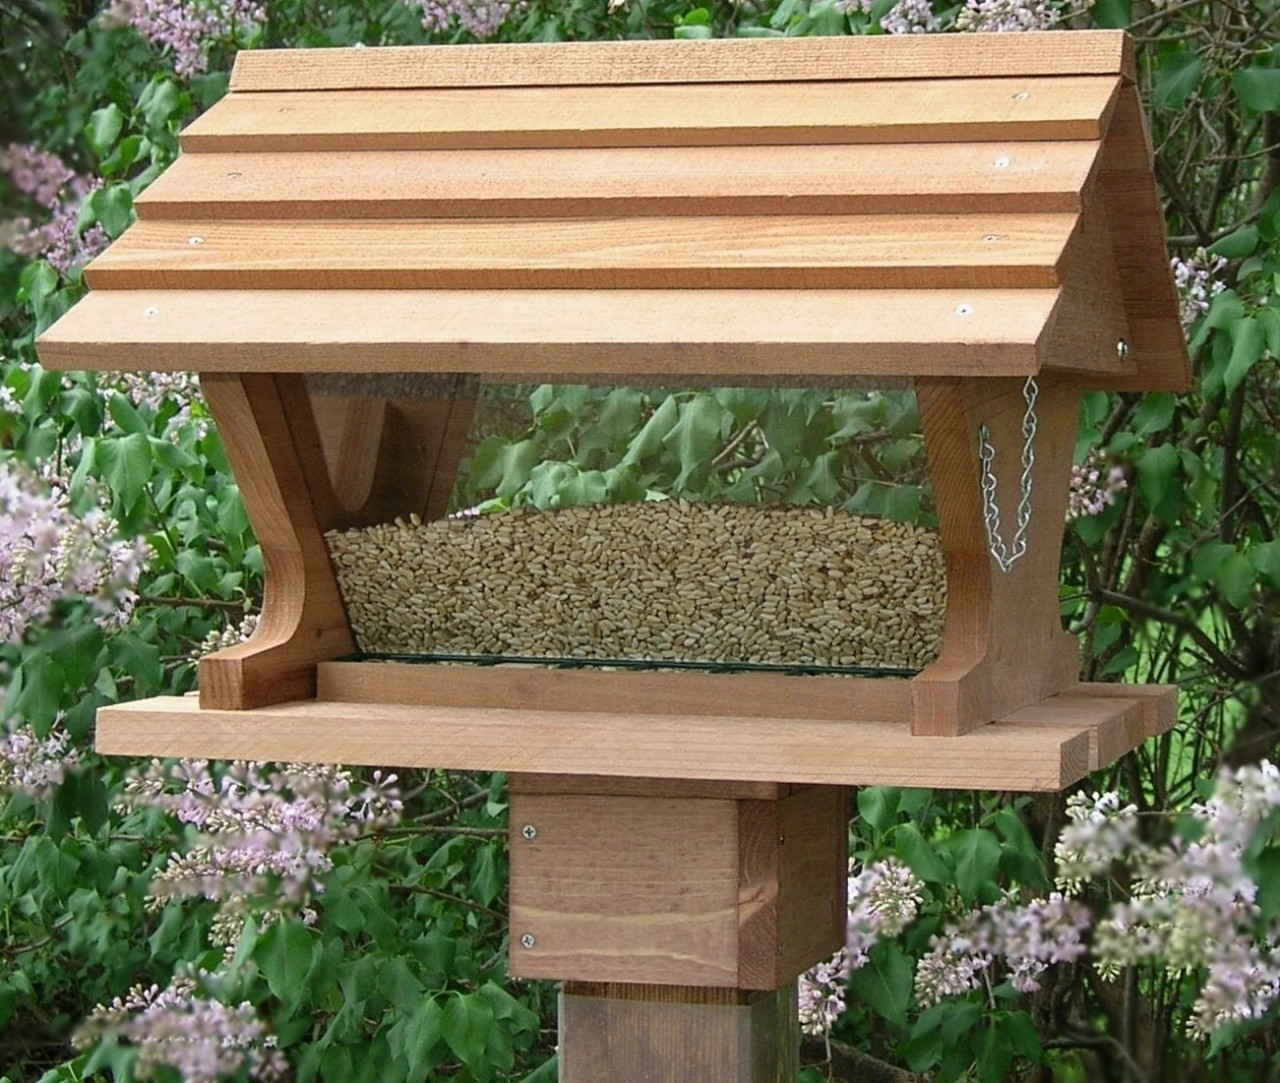 Woodworking plans table saw station, large capacity bird feeder plans ...